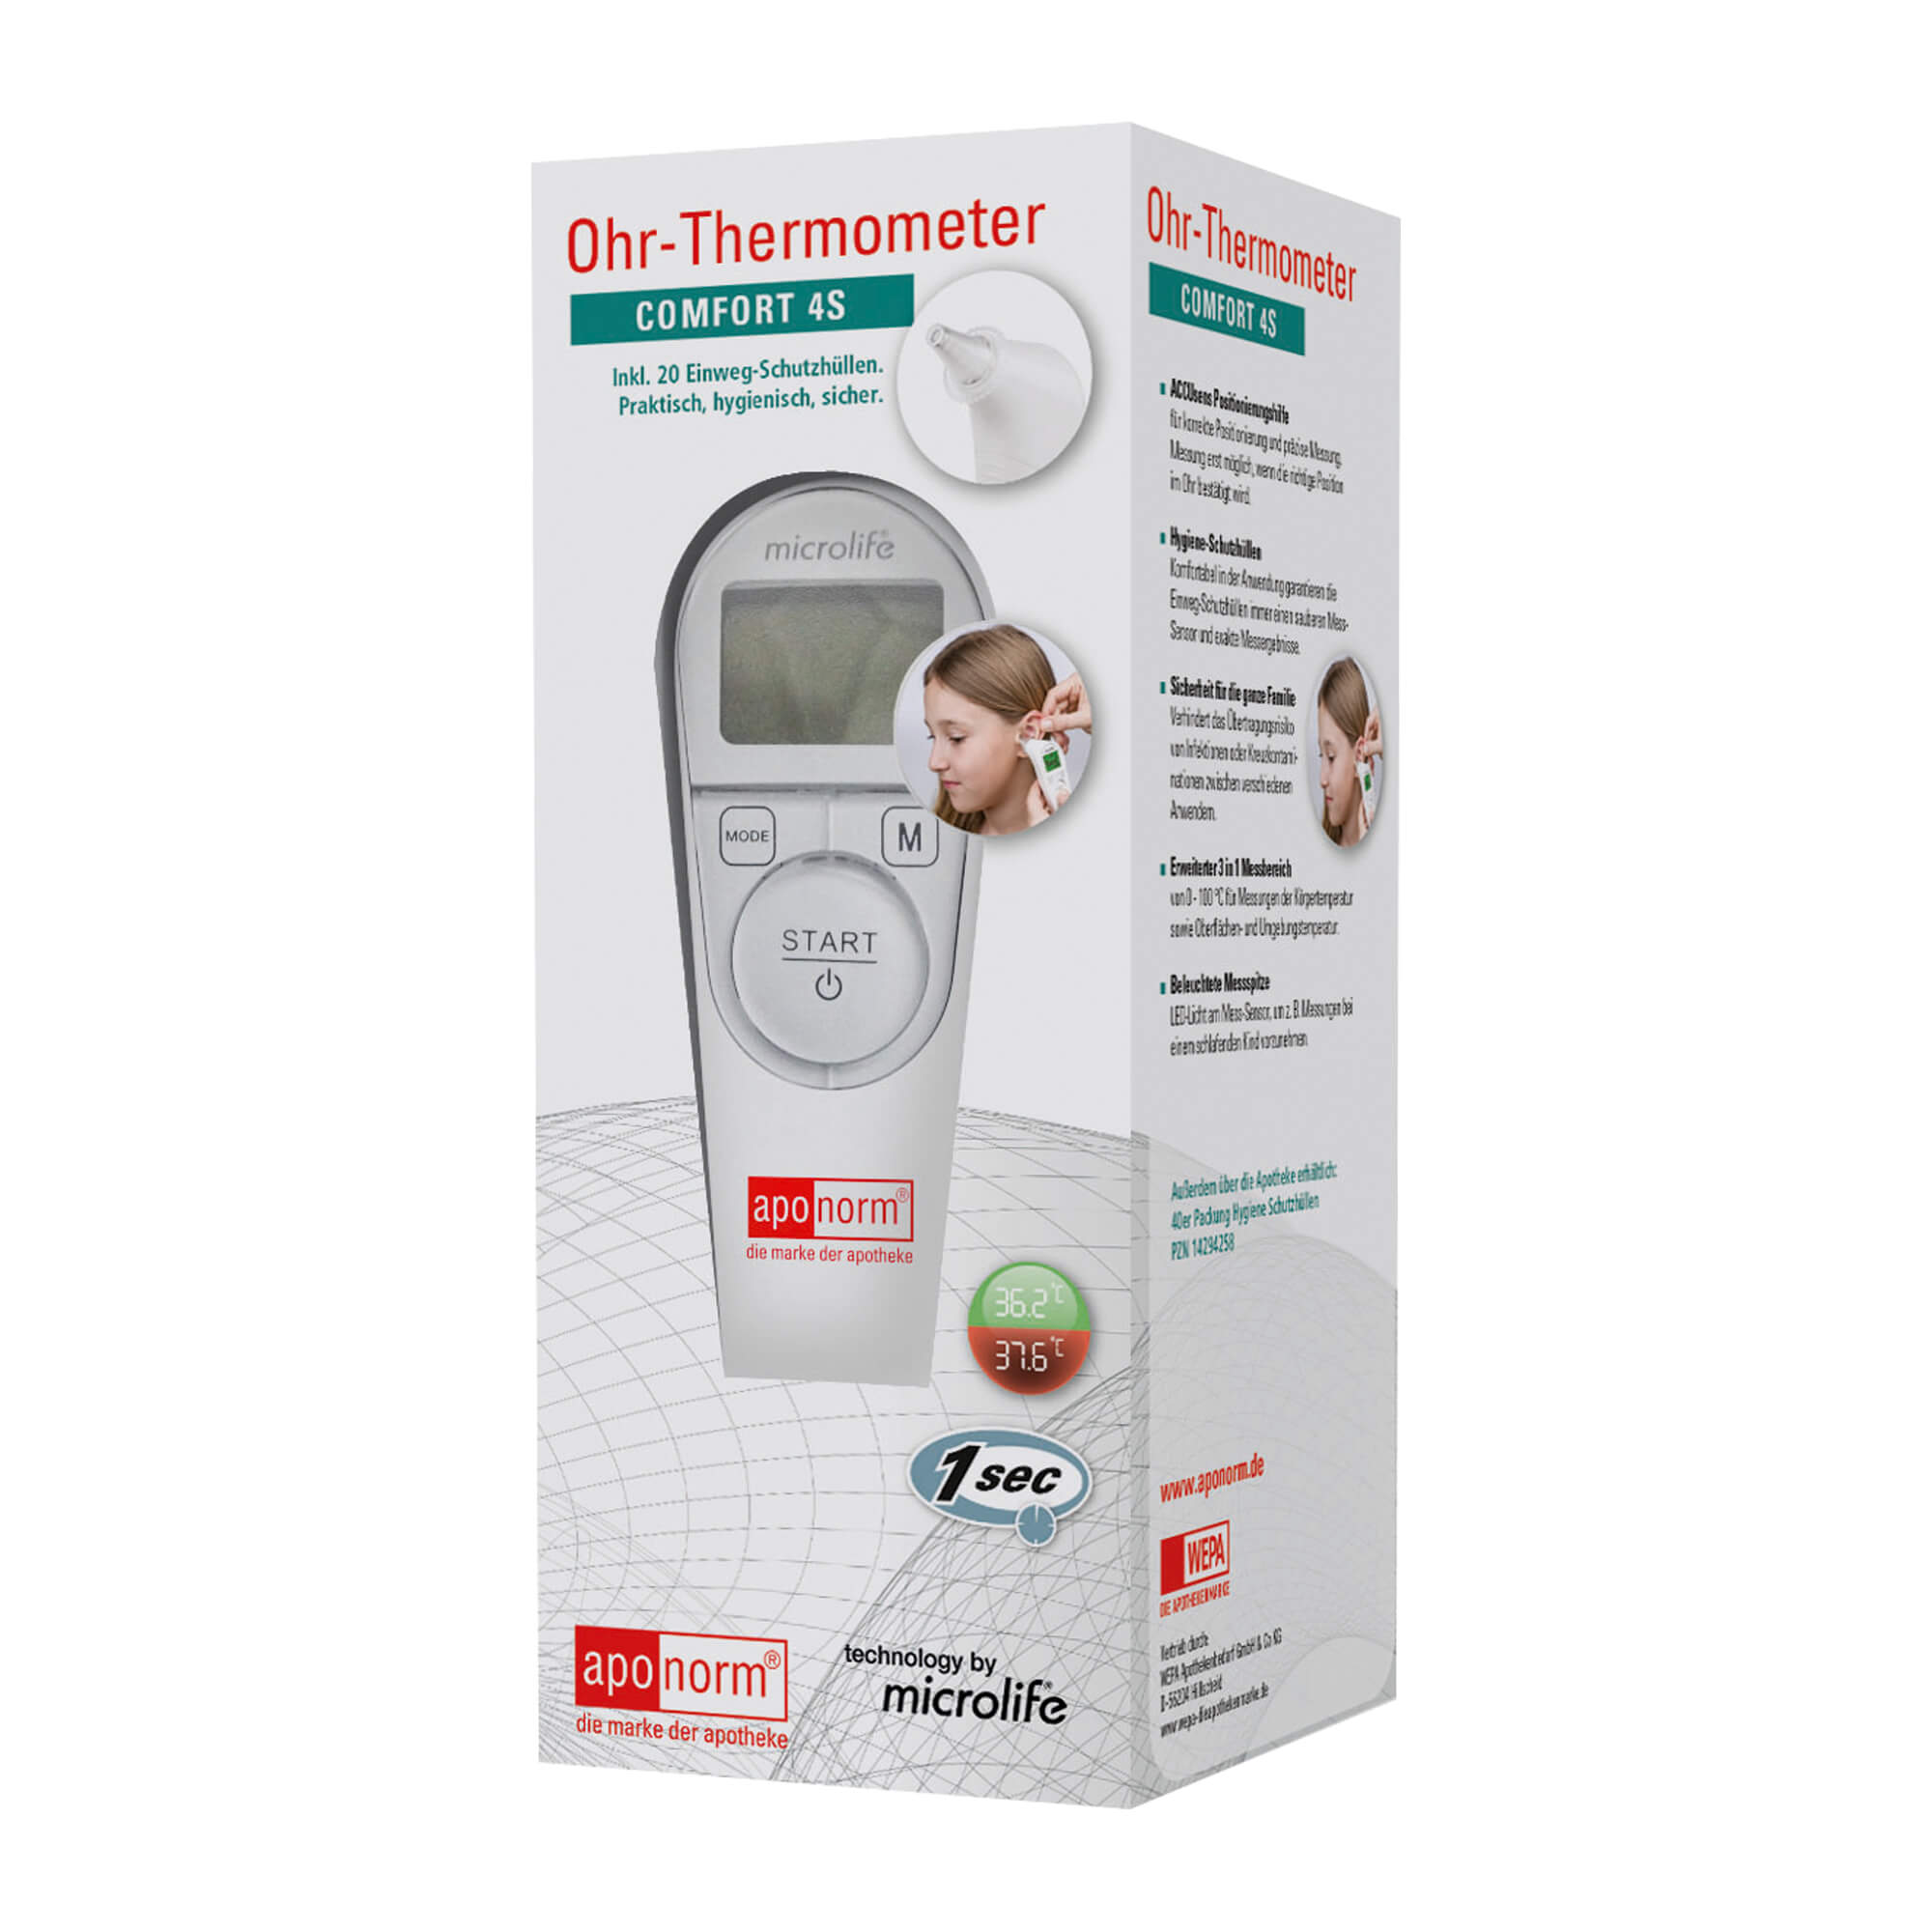 Aponorm Fieberthermometer Ohr Comfort 4S